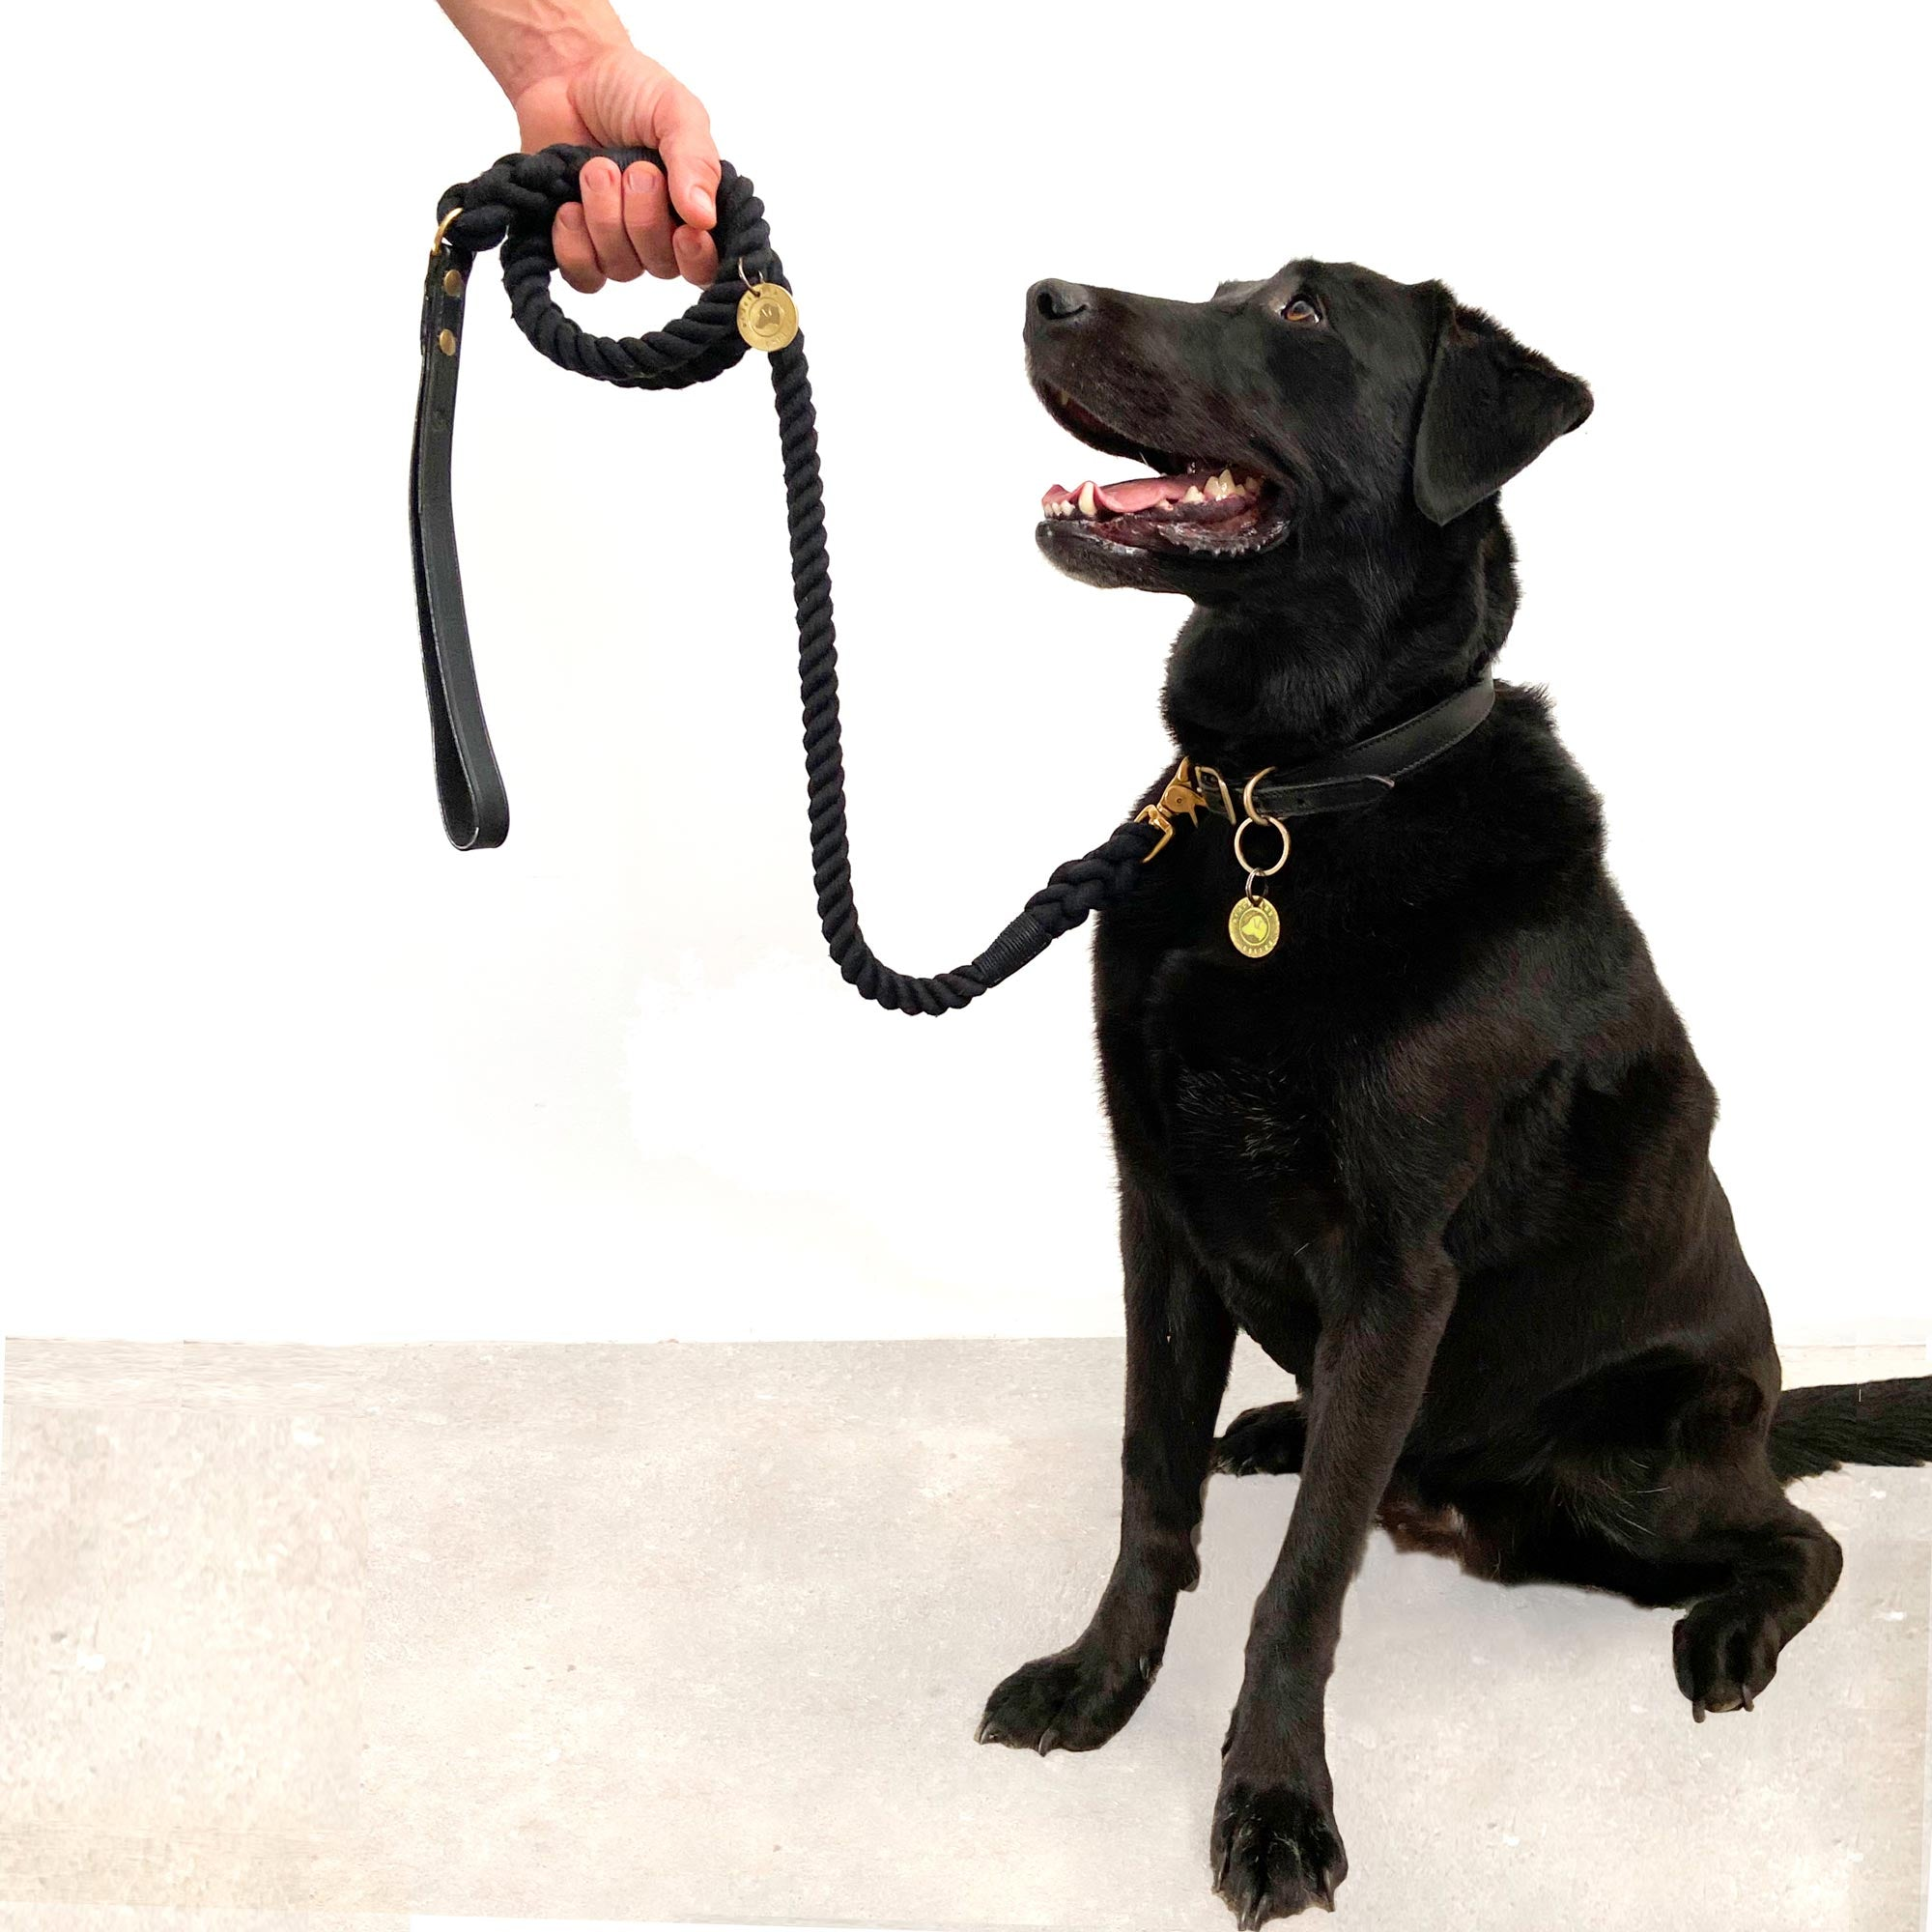 Black Labrador with lead and collar